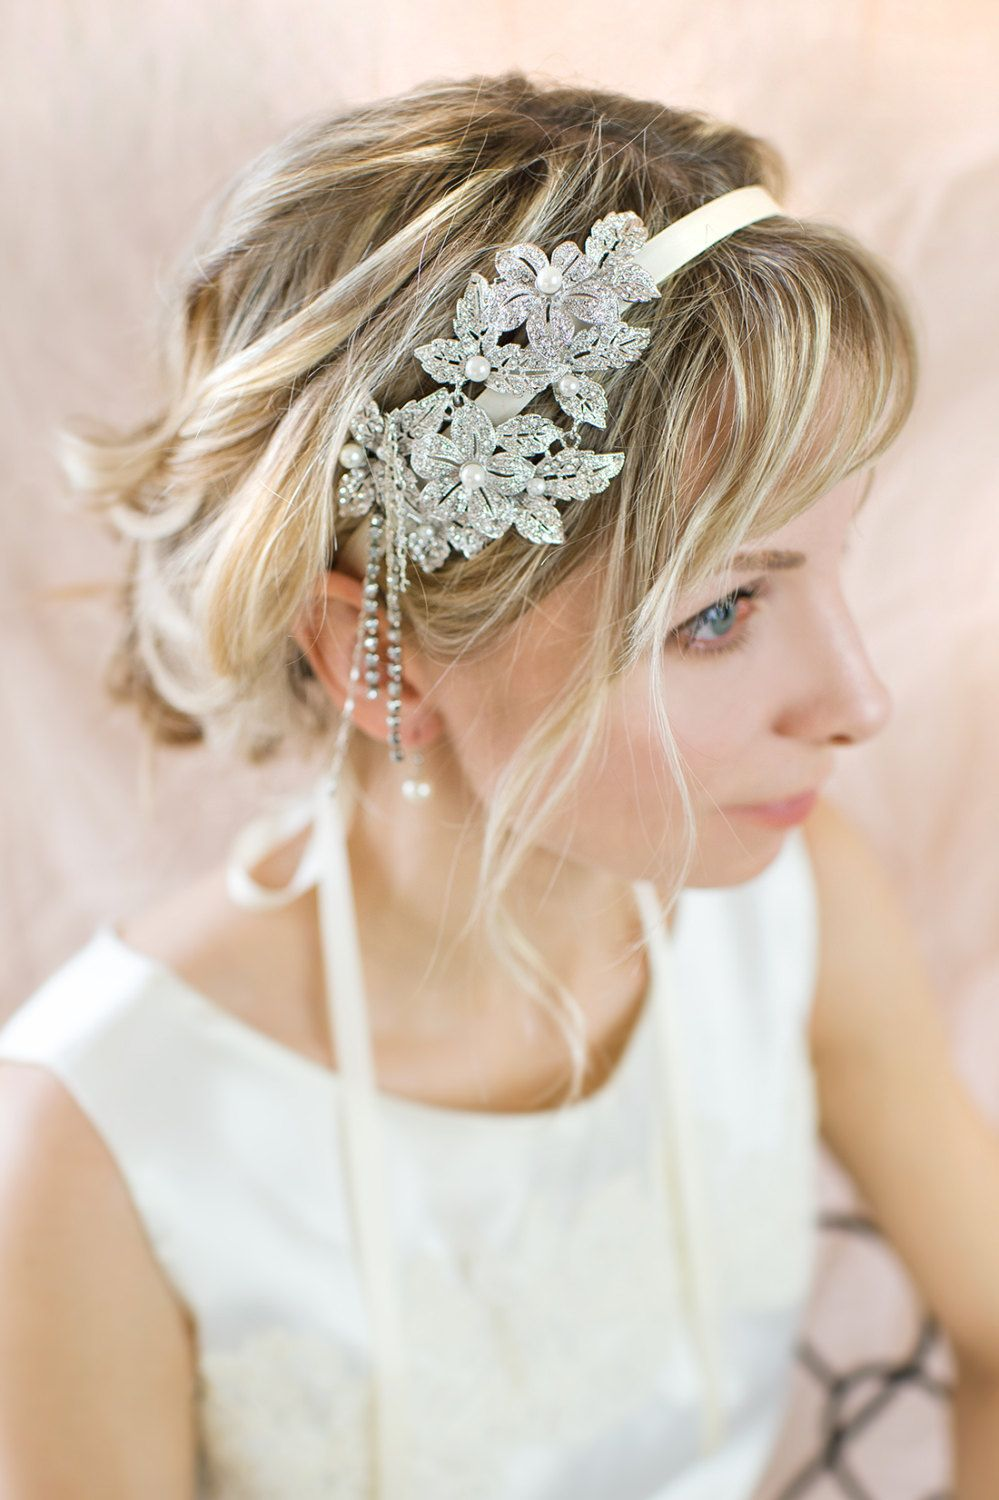 S gatsby inspired wedding hairstyles hair pinterest gatsby